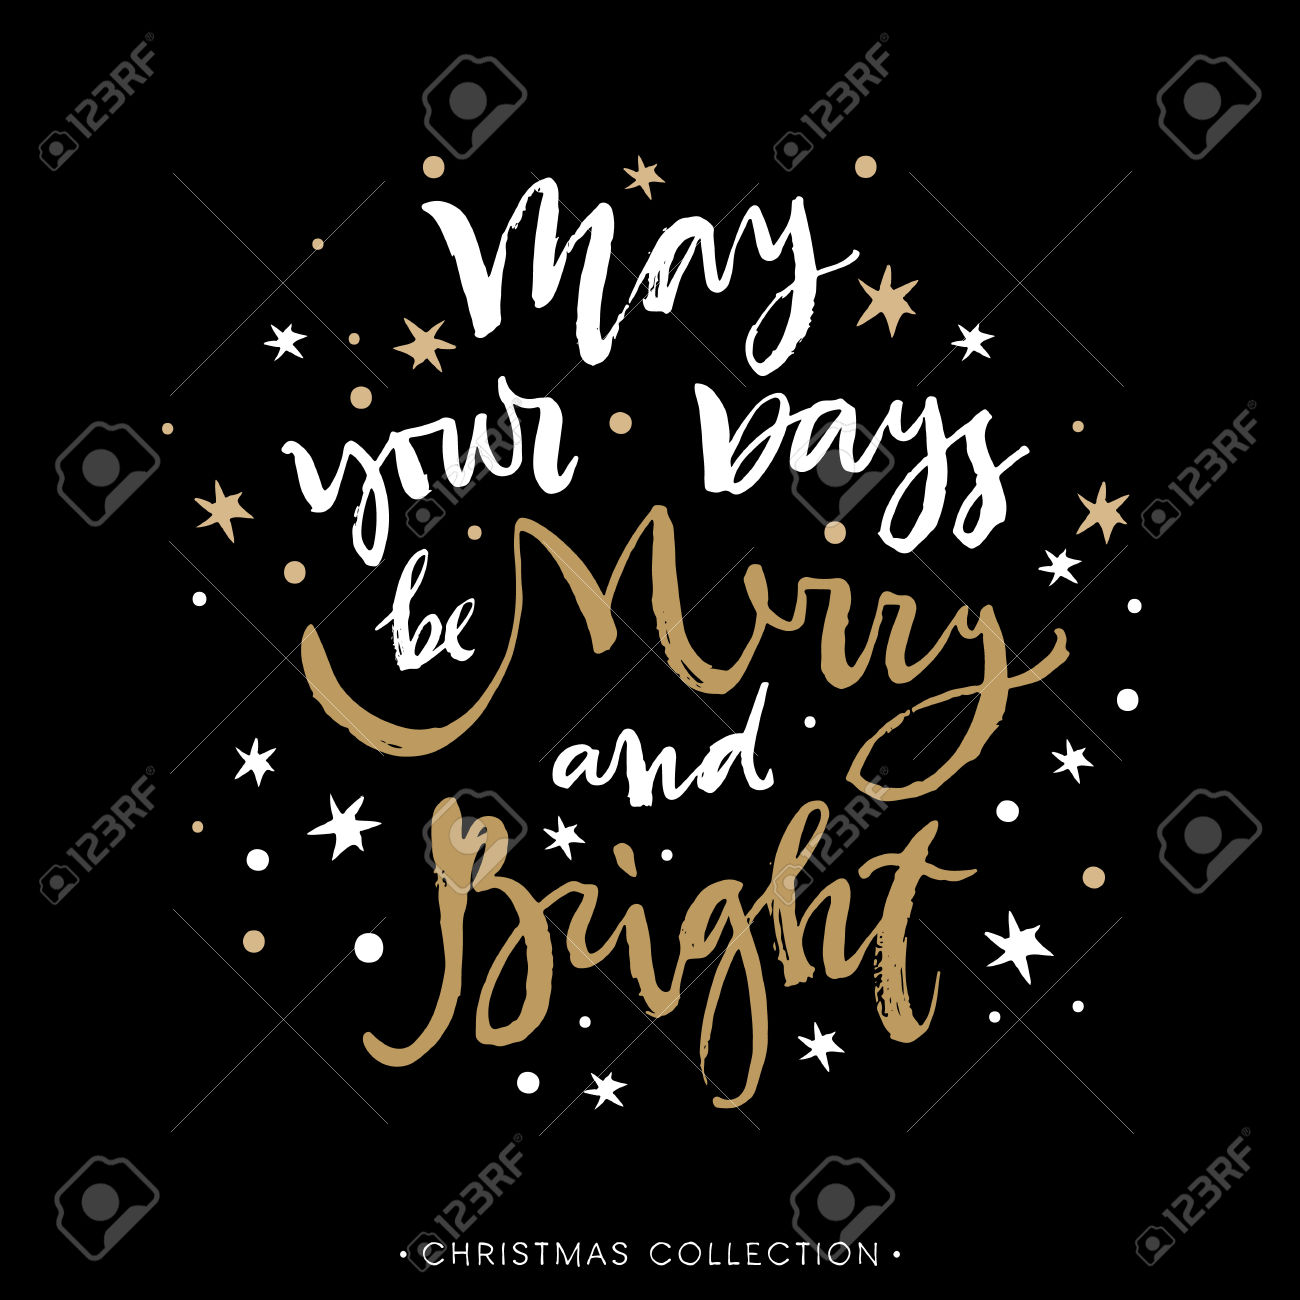 Bright clipart merry May collection clipart Days nativity